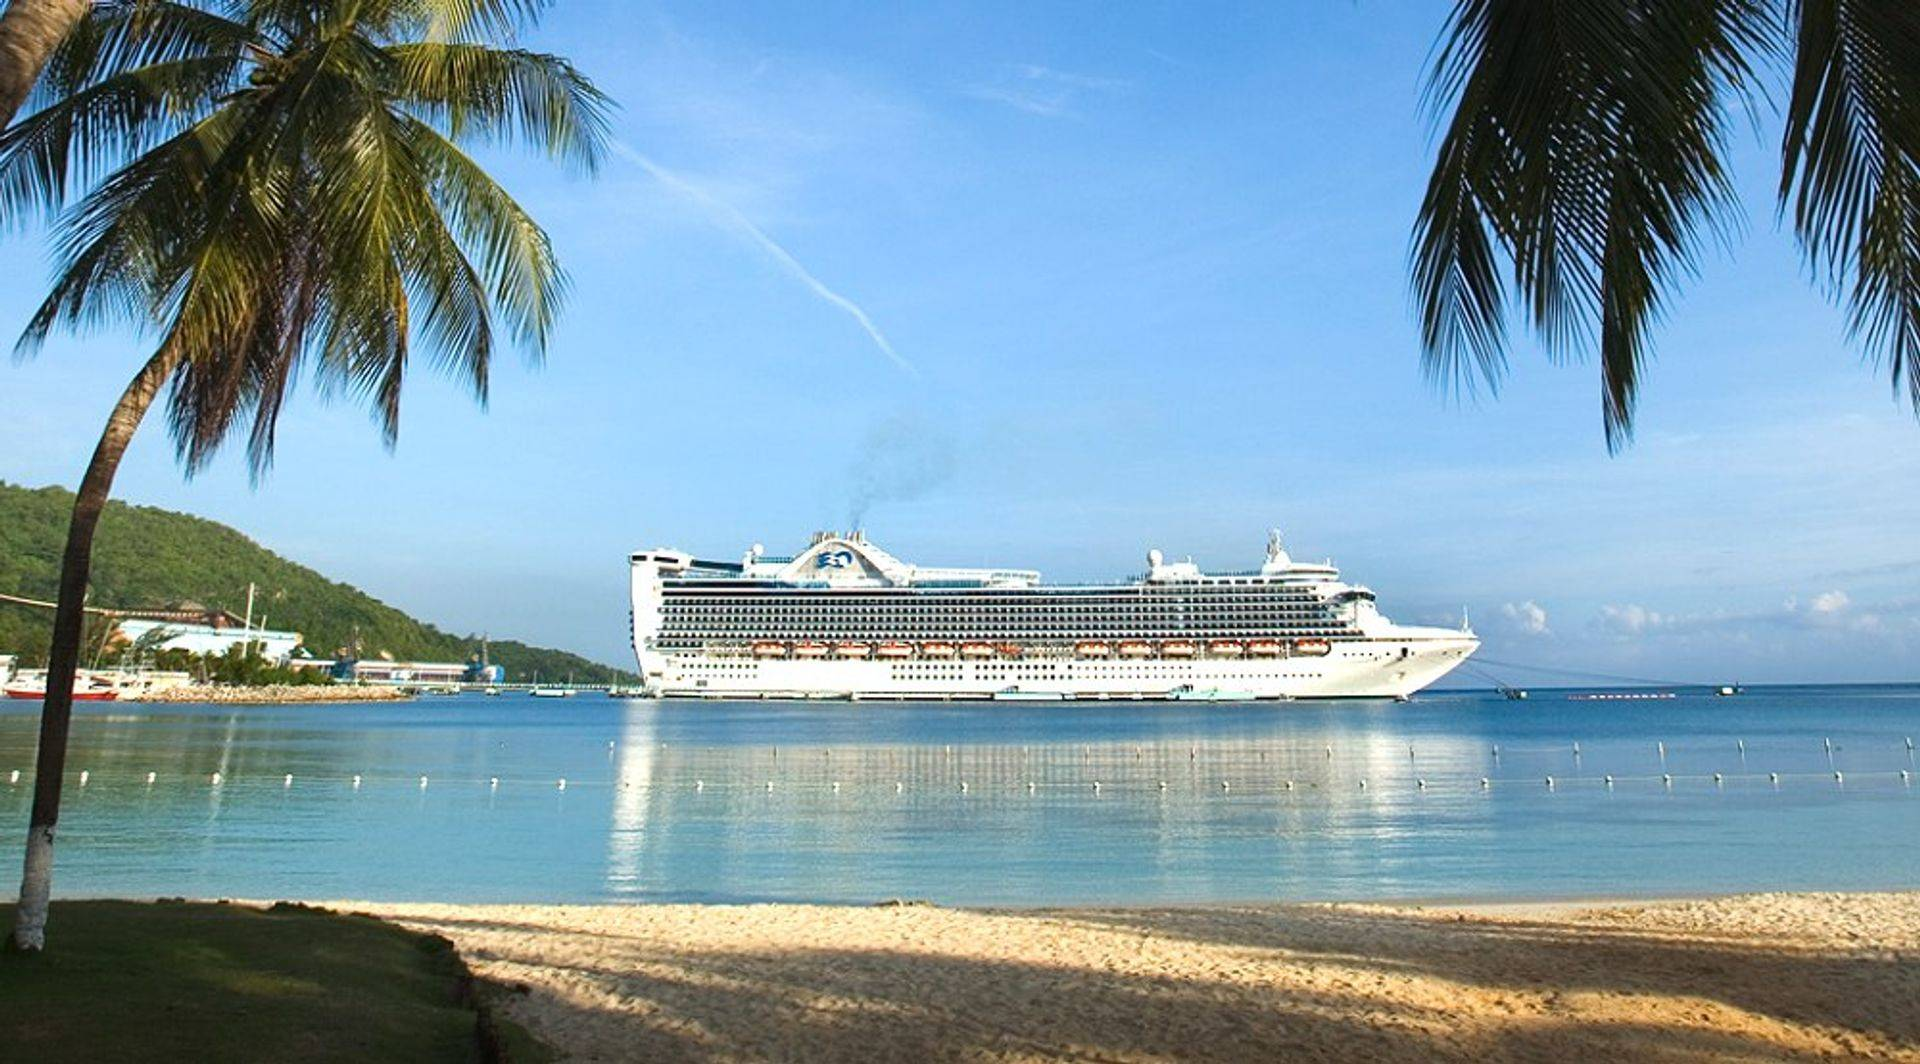 Beautfiul cruise ship